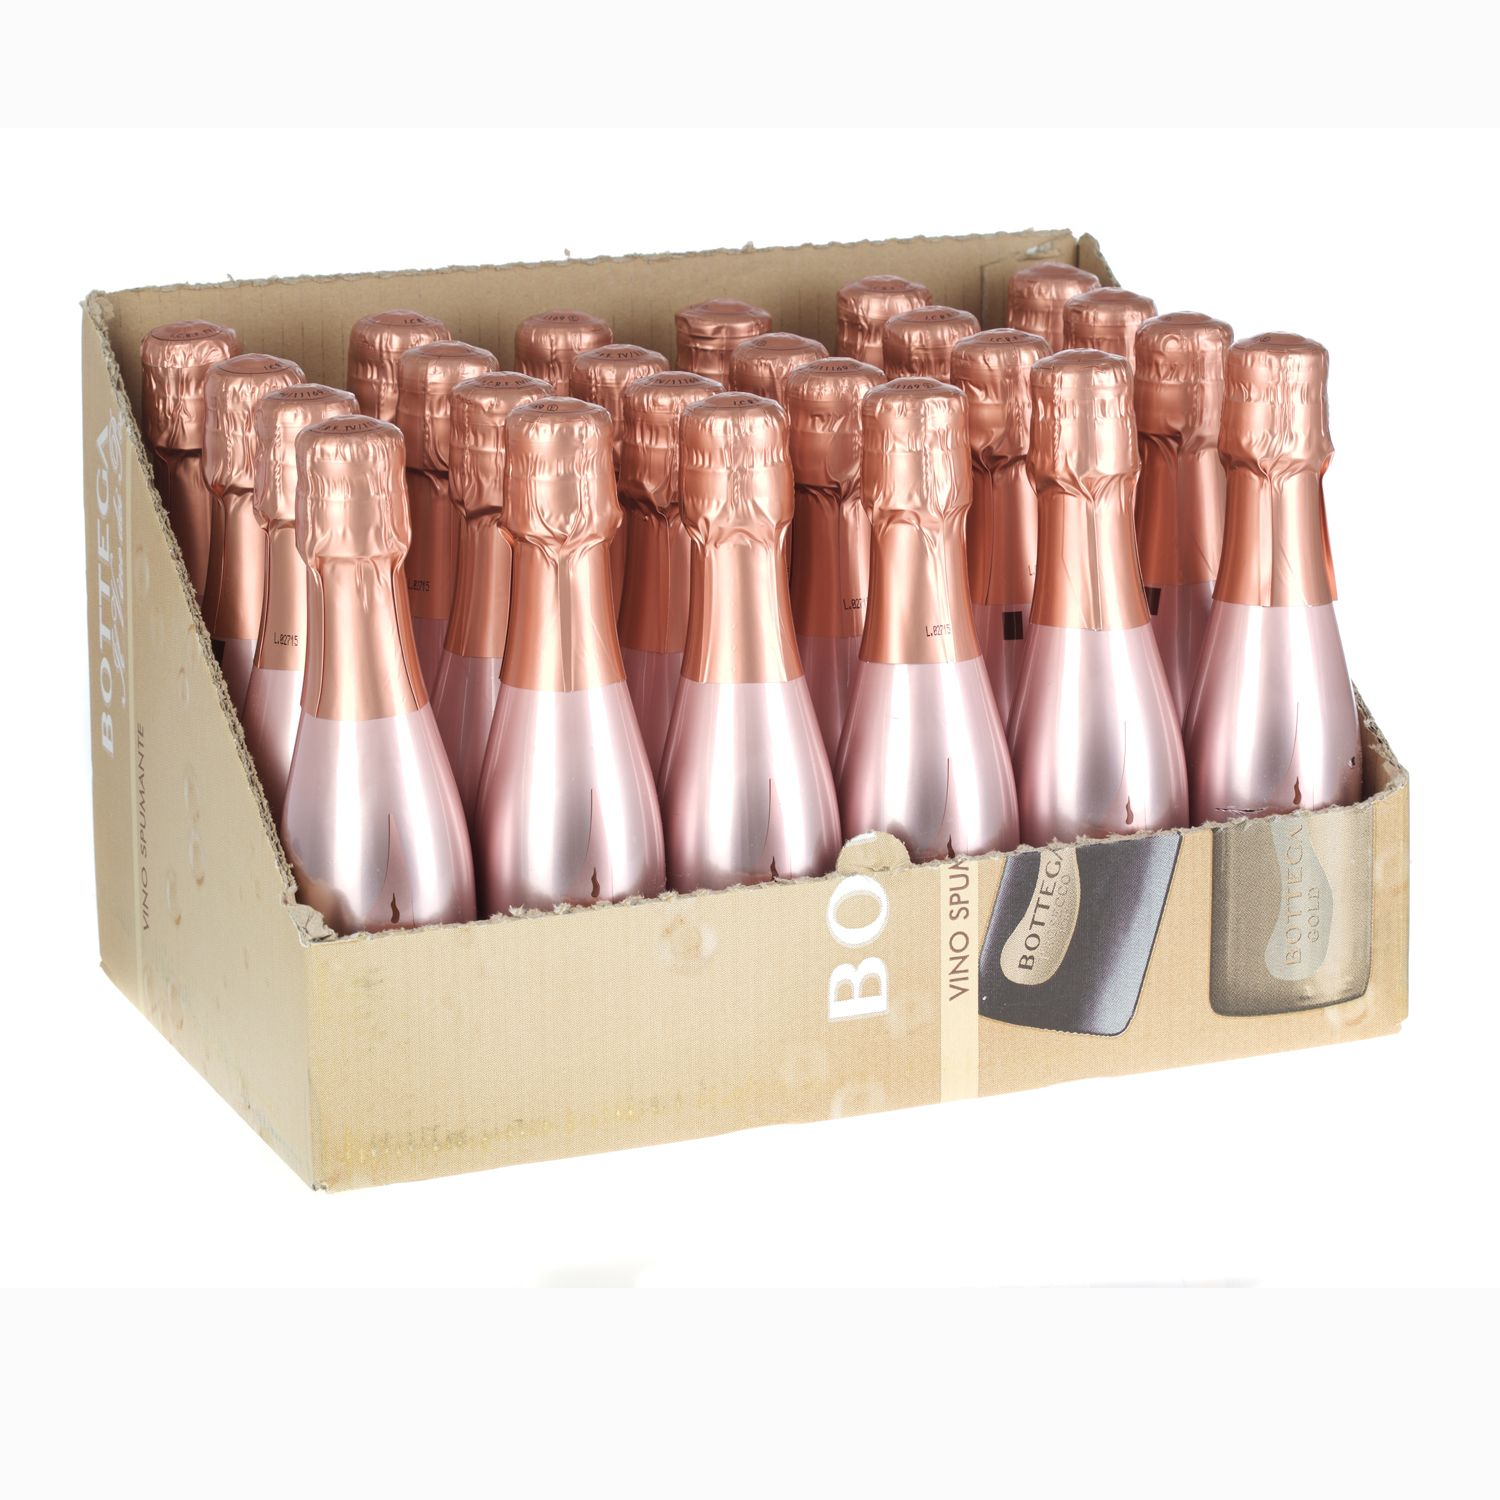 Rose gold wedding inspiration onewed rose gold ruffly wedding chair - Bottega Rose Gold Spumante Sparkling Wine Miniature 200ml 24 Pack